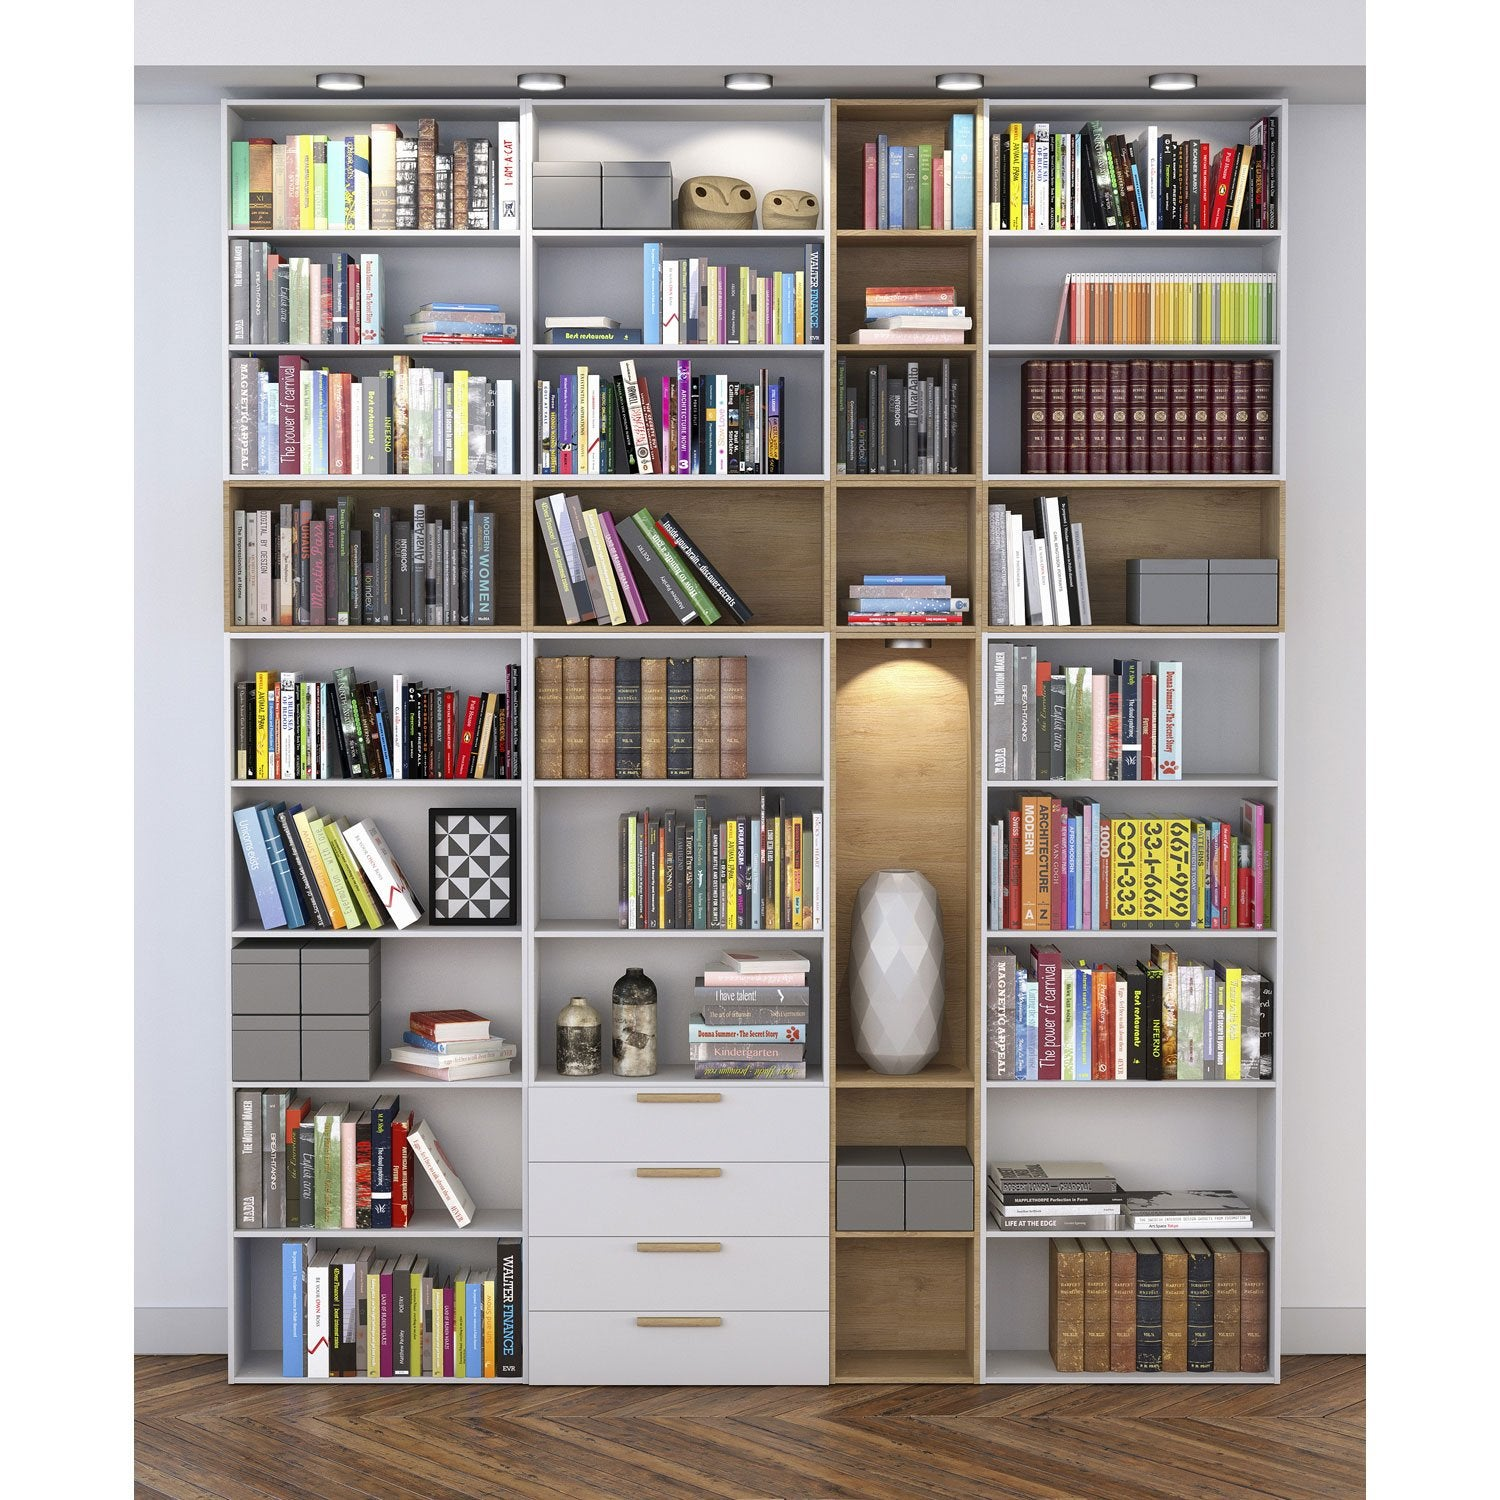 Biblioth que spaceo home effet ch ne leroy merlin - Leroy merlin tablette chene ...